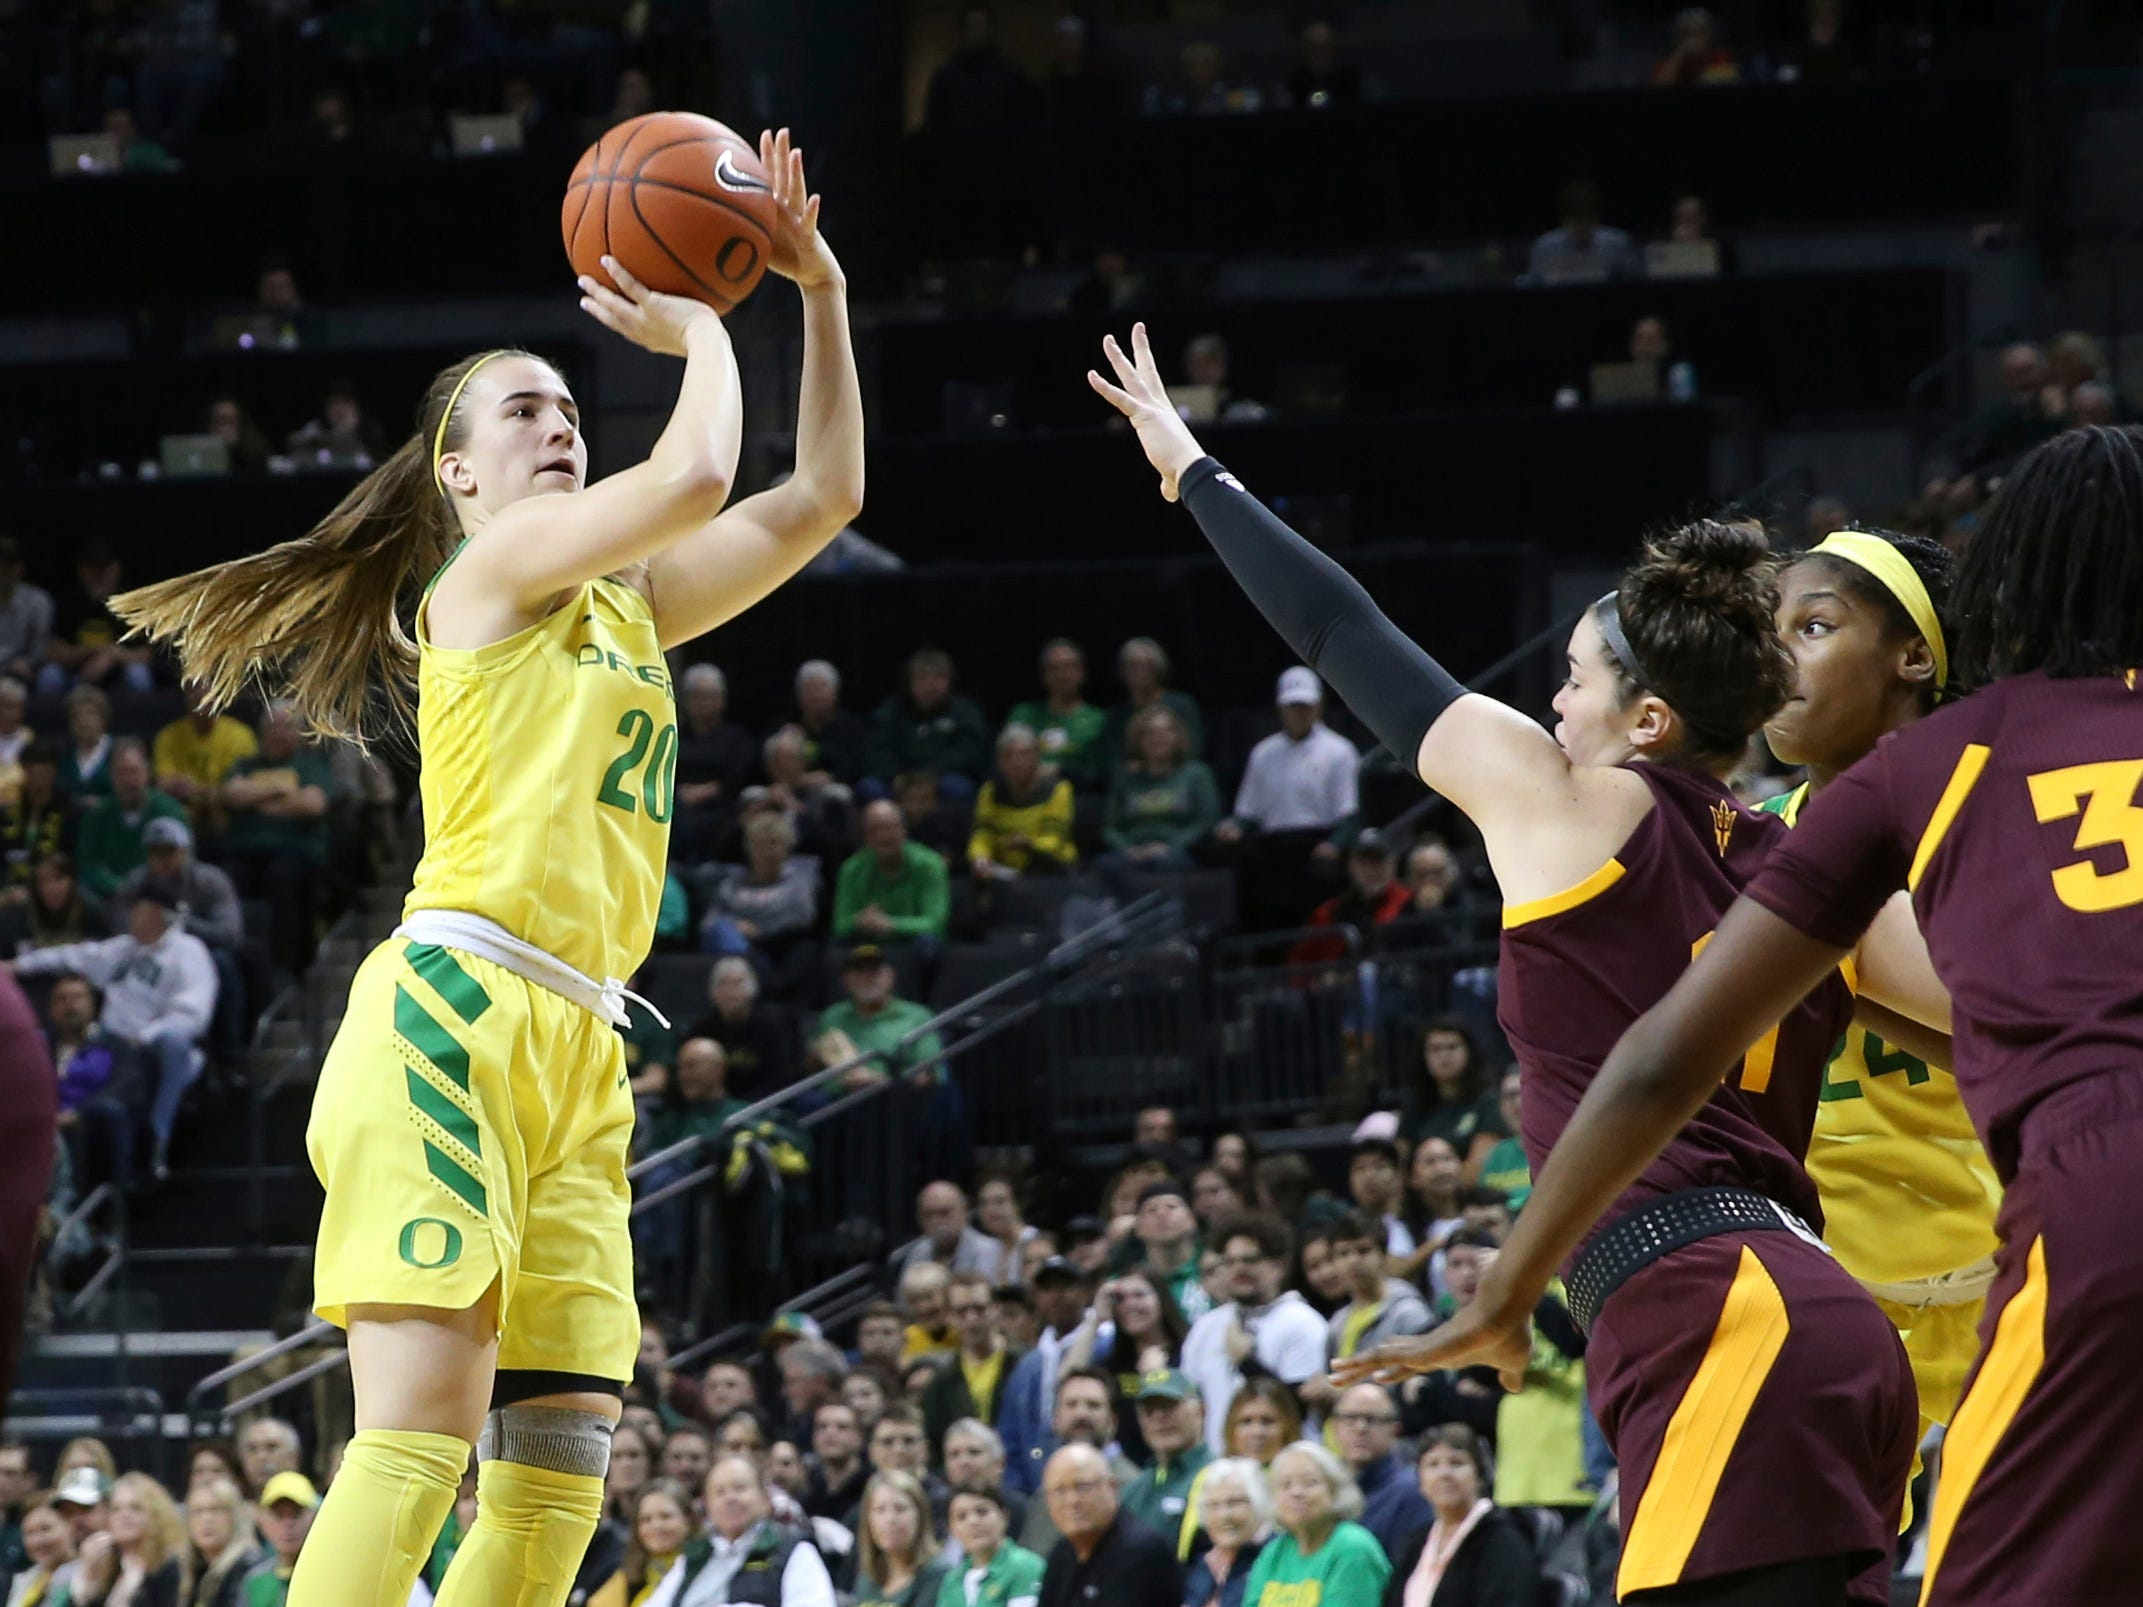 Oregon's Sabrina Ionescu, left, shots over Arizona State's Robbi Ryan, center, and Oregon teammate Ruthy Hebard during the first quarter an NCAA college  basketball game Friday, Jan. 18, 2019, in Eugene, Ore. (AP Photo/Chris Pietsch)